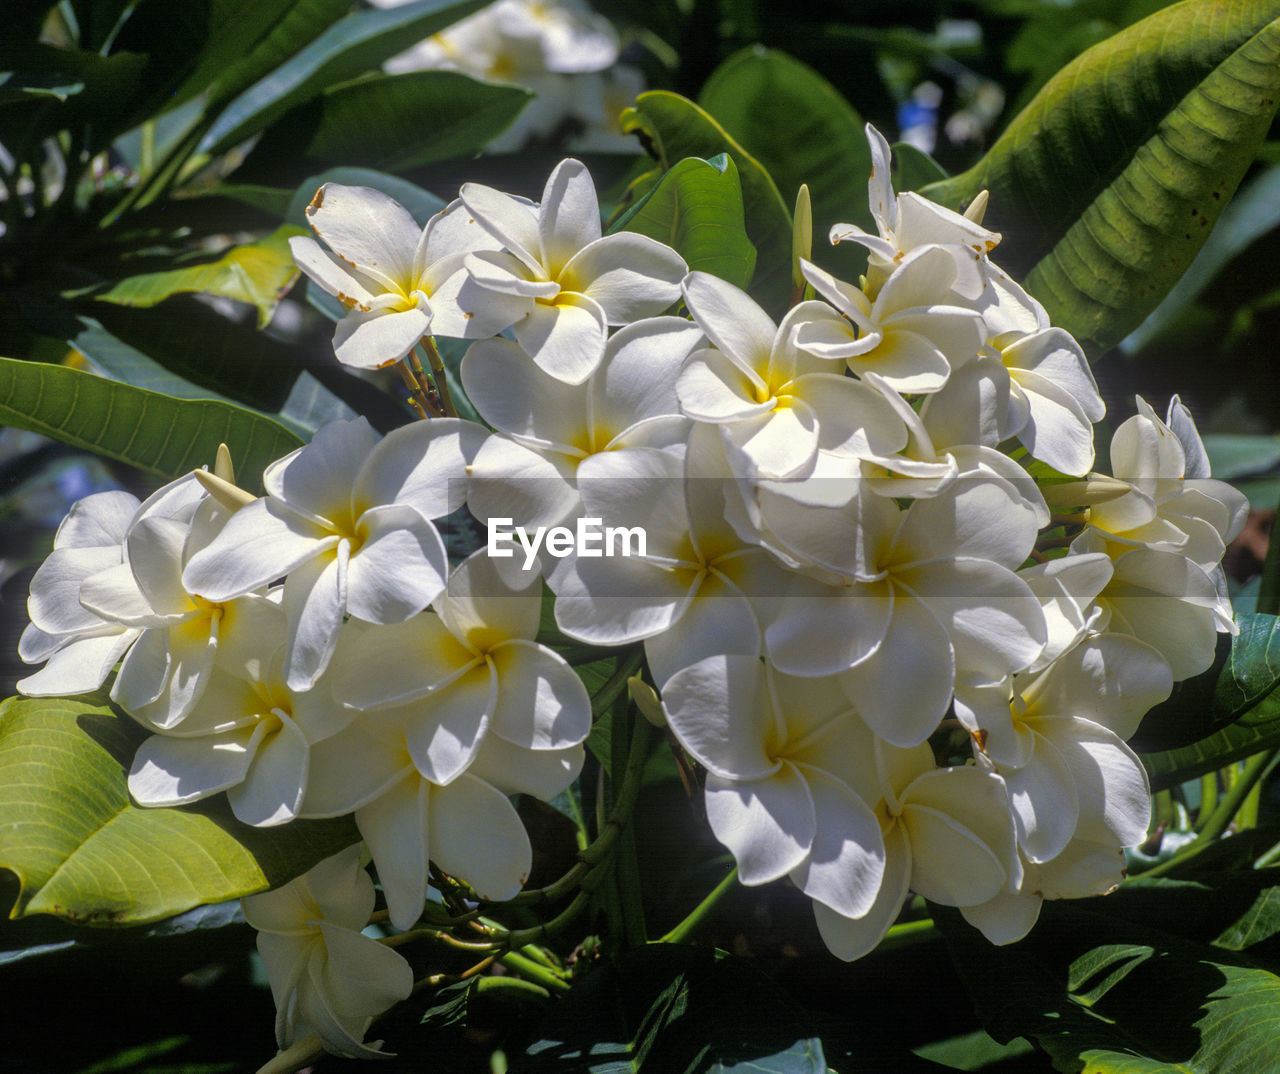 flower, petal, growth, beauty in nature, fragility, plant, nature, freshness, white color, flower head, day, blooming, leaf, outdoors, no people, close-up, frangipani